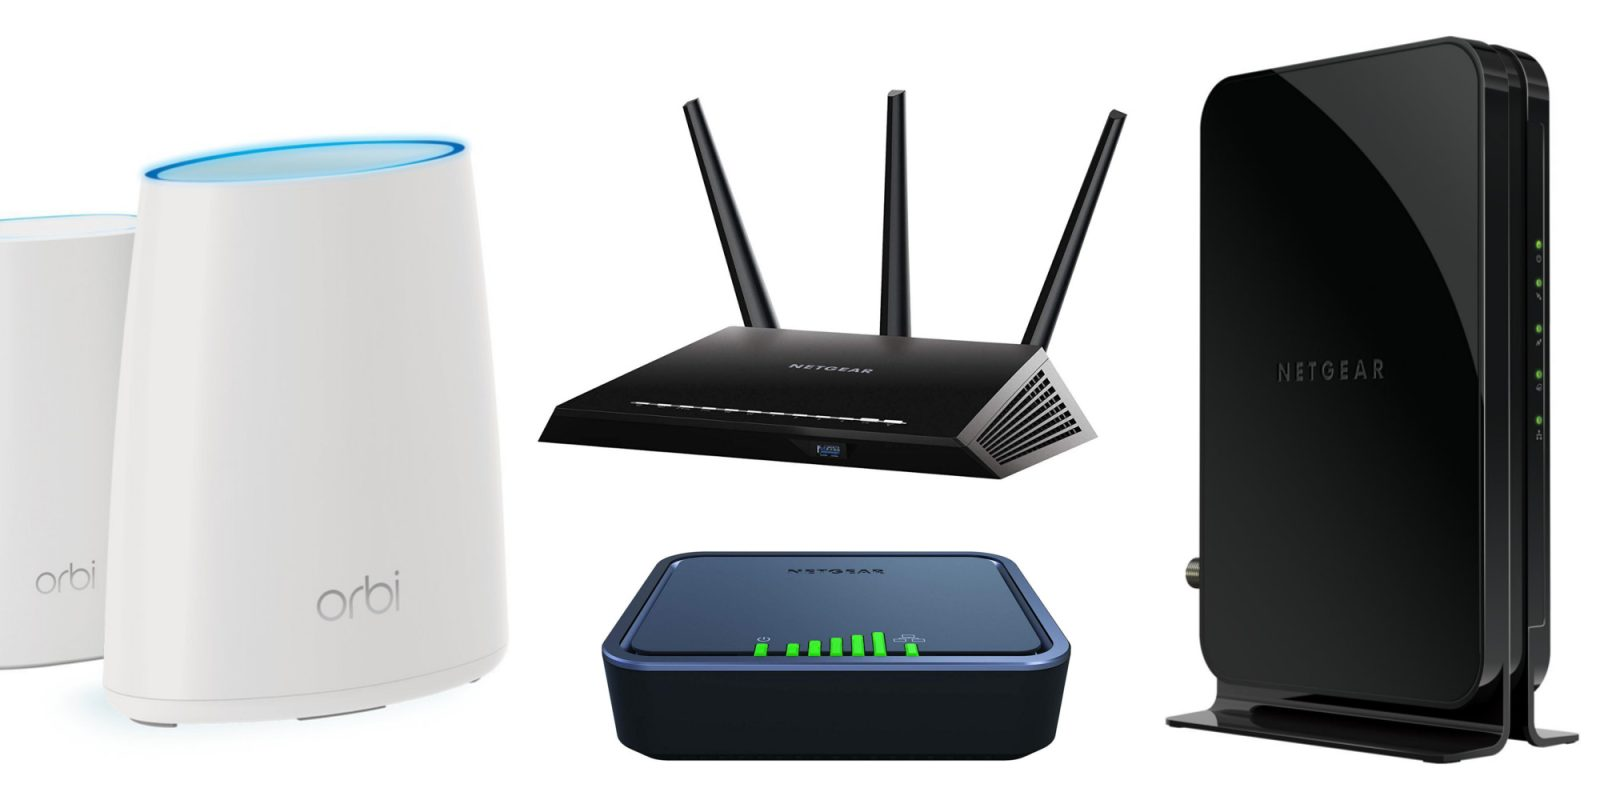 Amazon 1-day NETGEAR networking sale from $50: routers, mesh